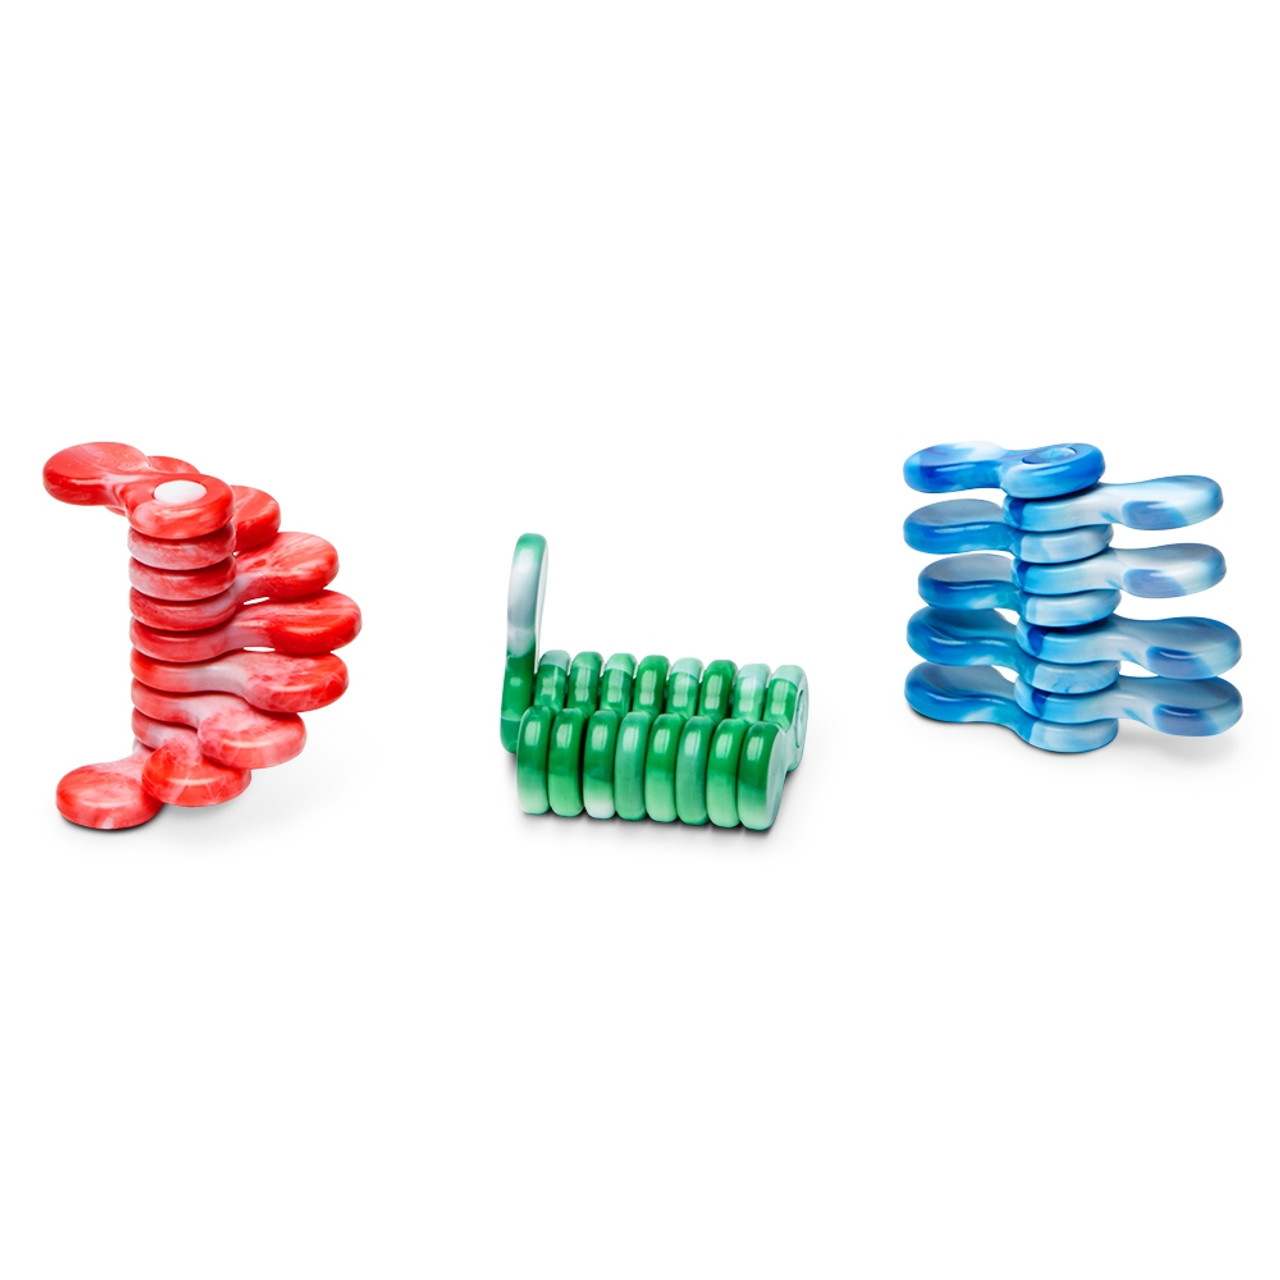 Helix; assorted colors